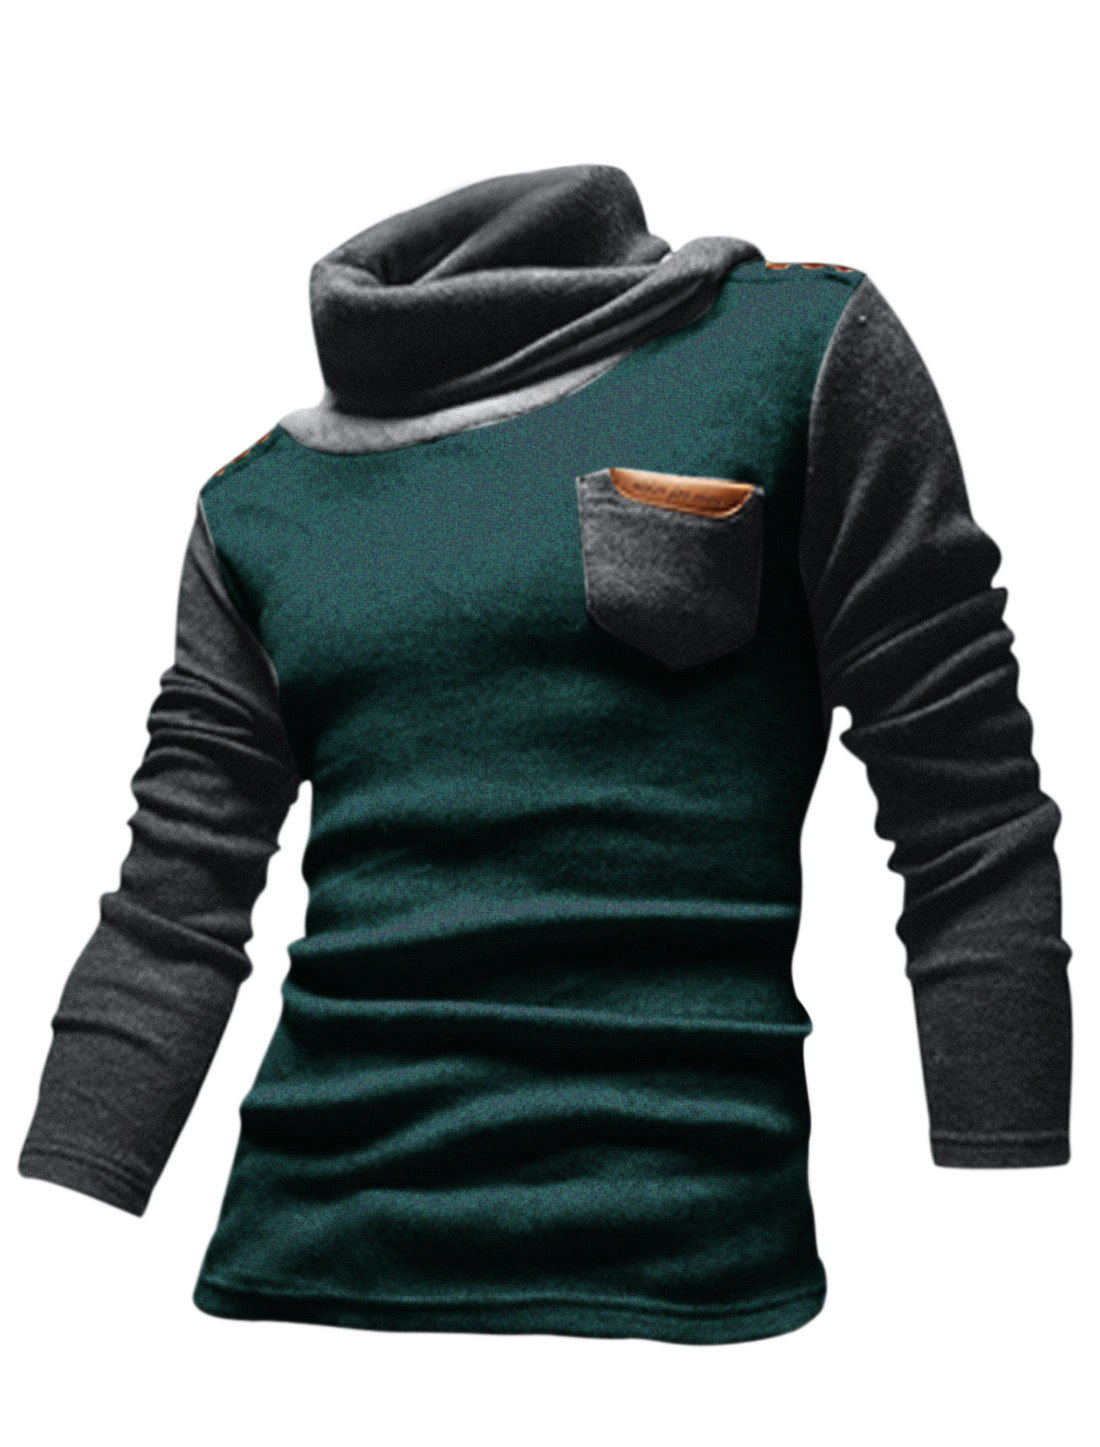 Men Cocoon Neck Contrast Color Two Tone Casual Knit Shirt Dark Green M